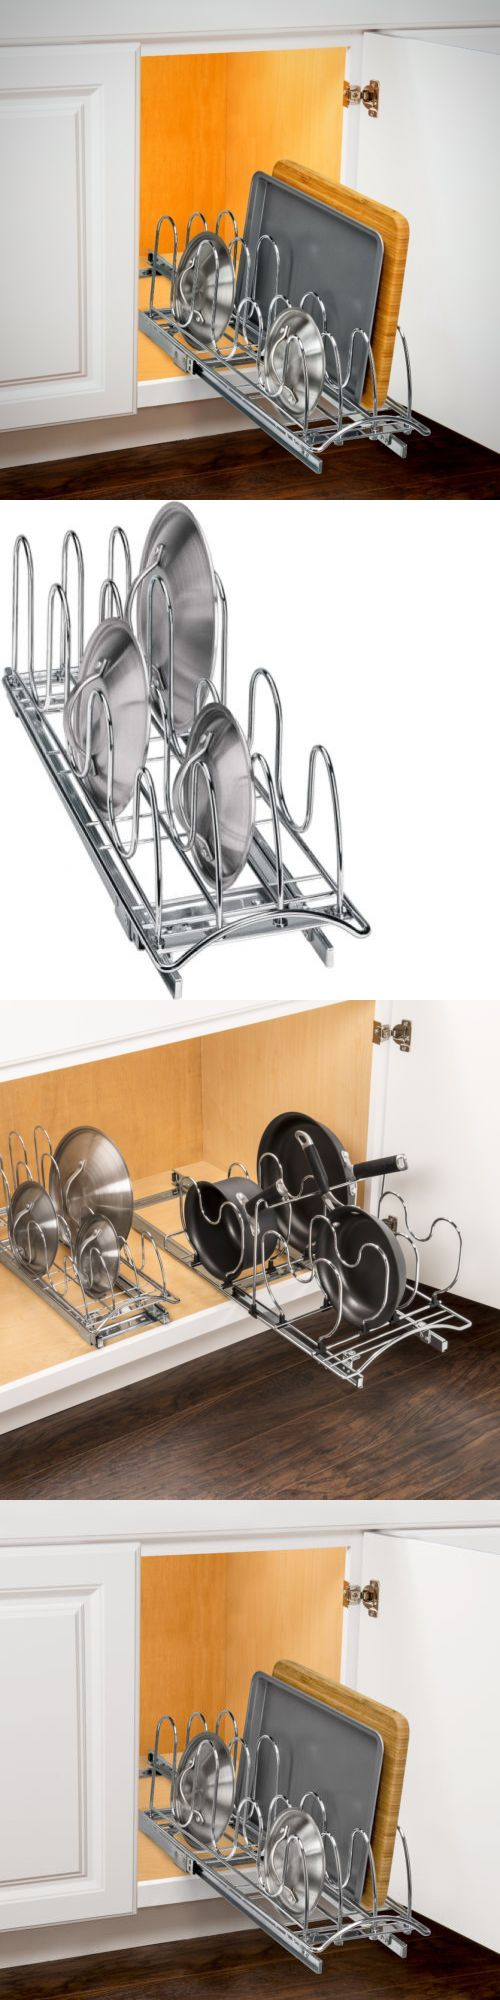 Racks and Holders 46283: Pan Lid Holder Kitchen Organizer Rack Pull Out Cabinet Metal Chrome Pantry Home -> BUY IT NOW ONLY: $41.97 on eBay!